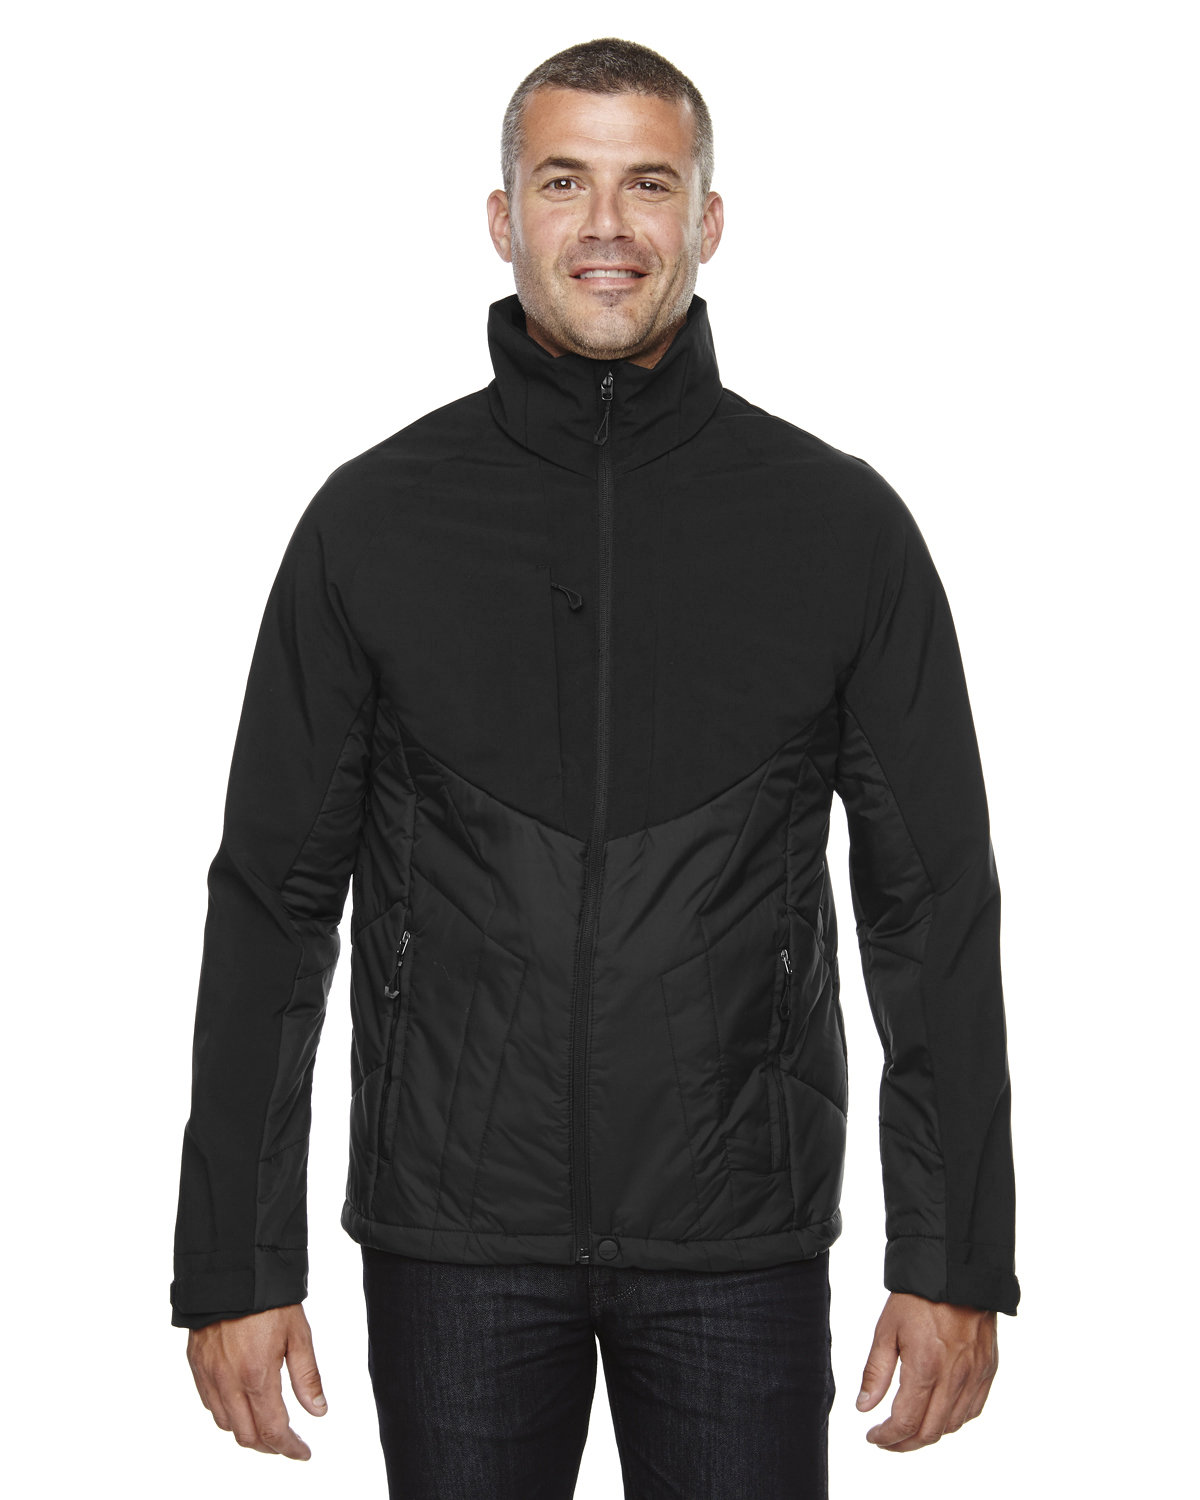 North End Men's Innovate Insulated Hybrid Soft Shell Jacket BLACK